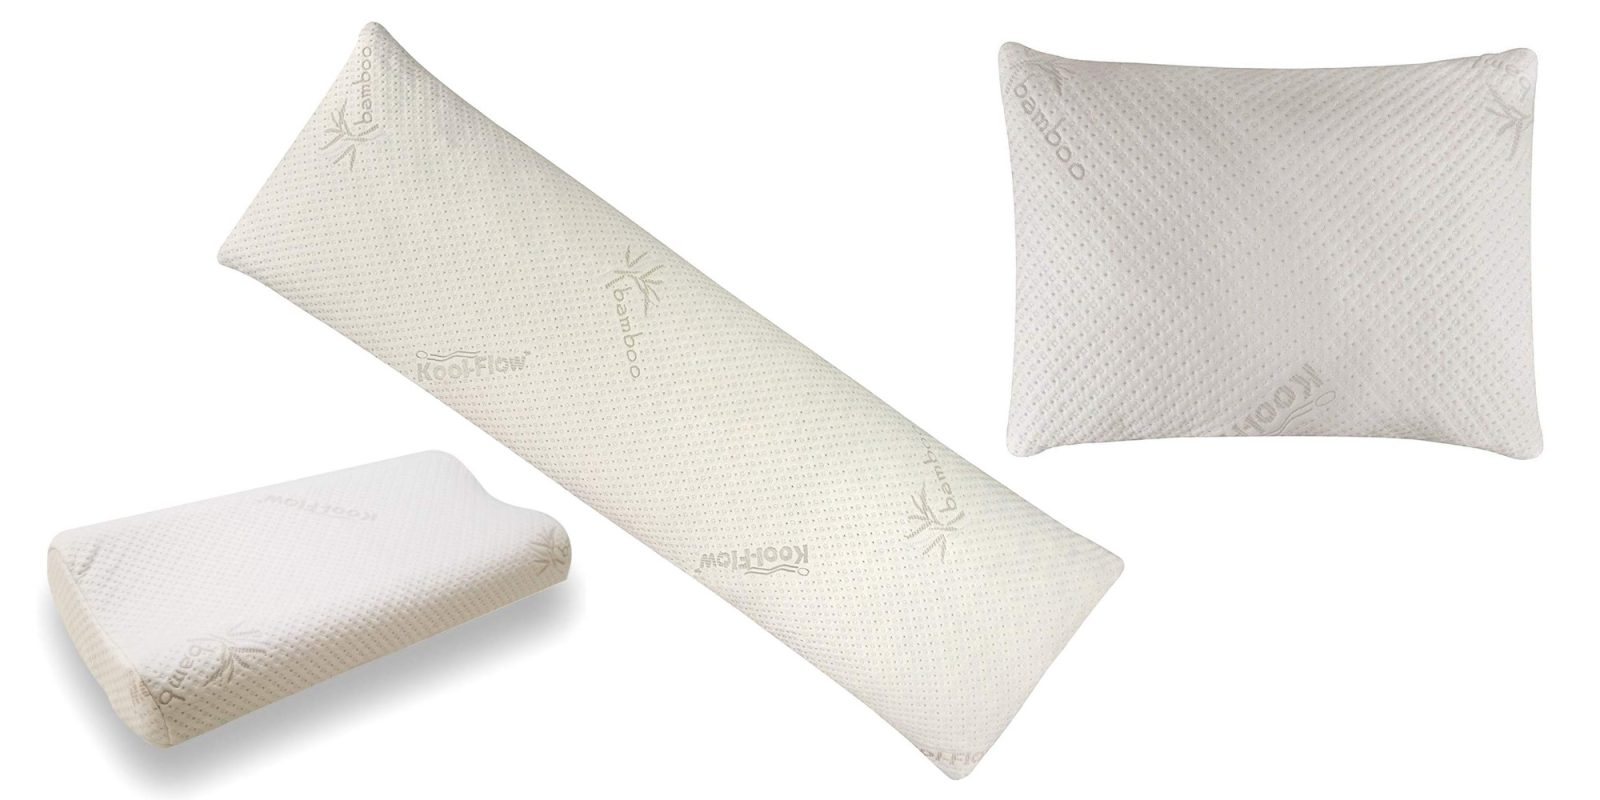 Bring home a new memory foam pillow at up to 40% with deals starting at $21